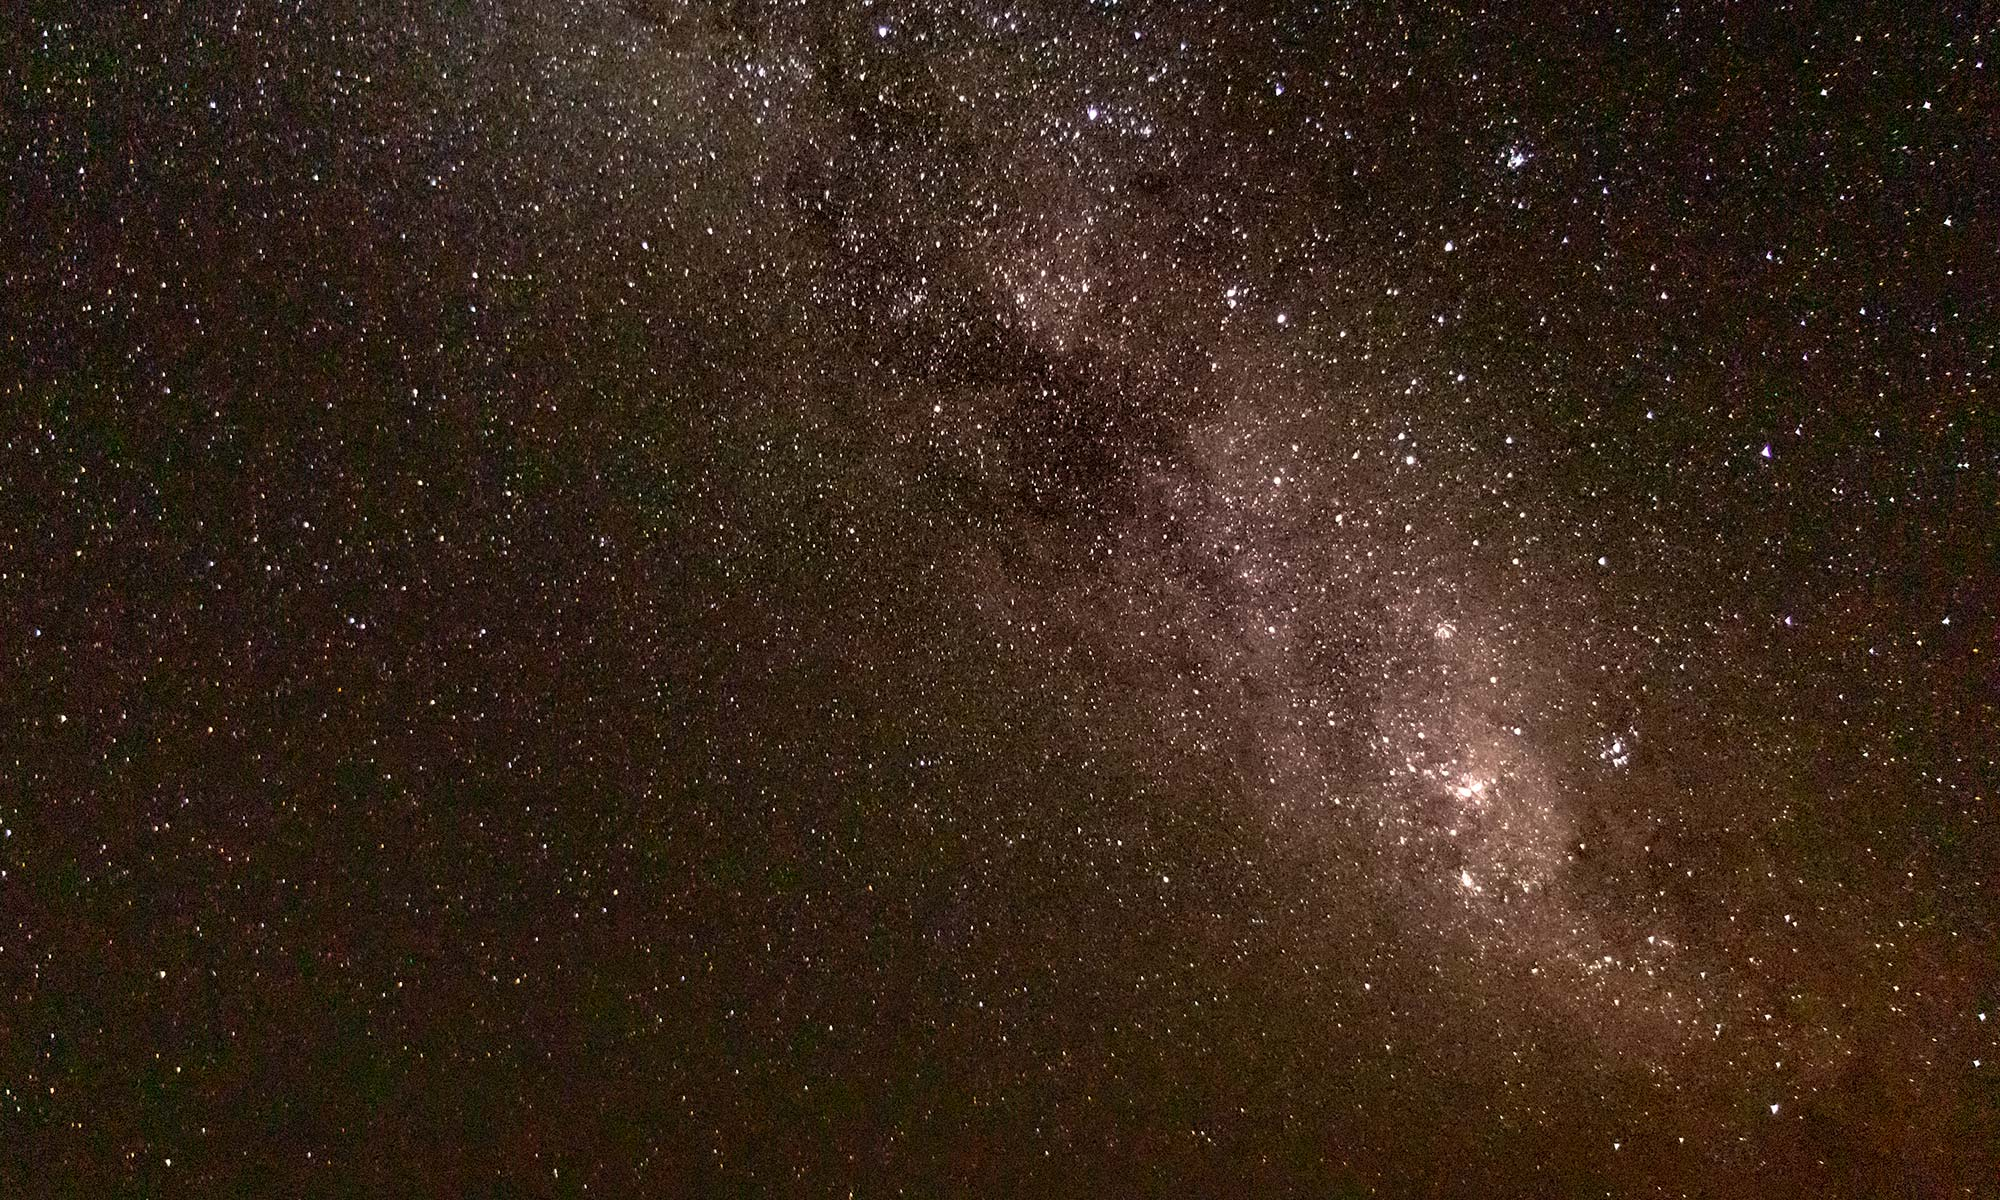 Stargazing and looking for the Milky Way is one of the most amazing things to do in Sossuvlei.